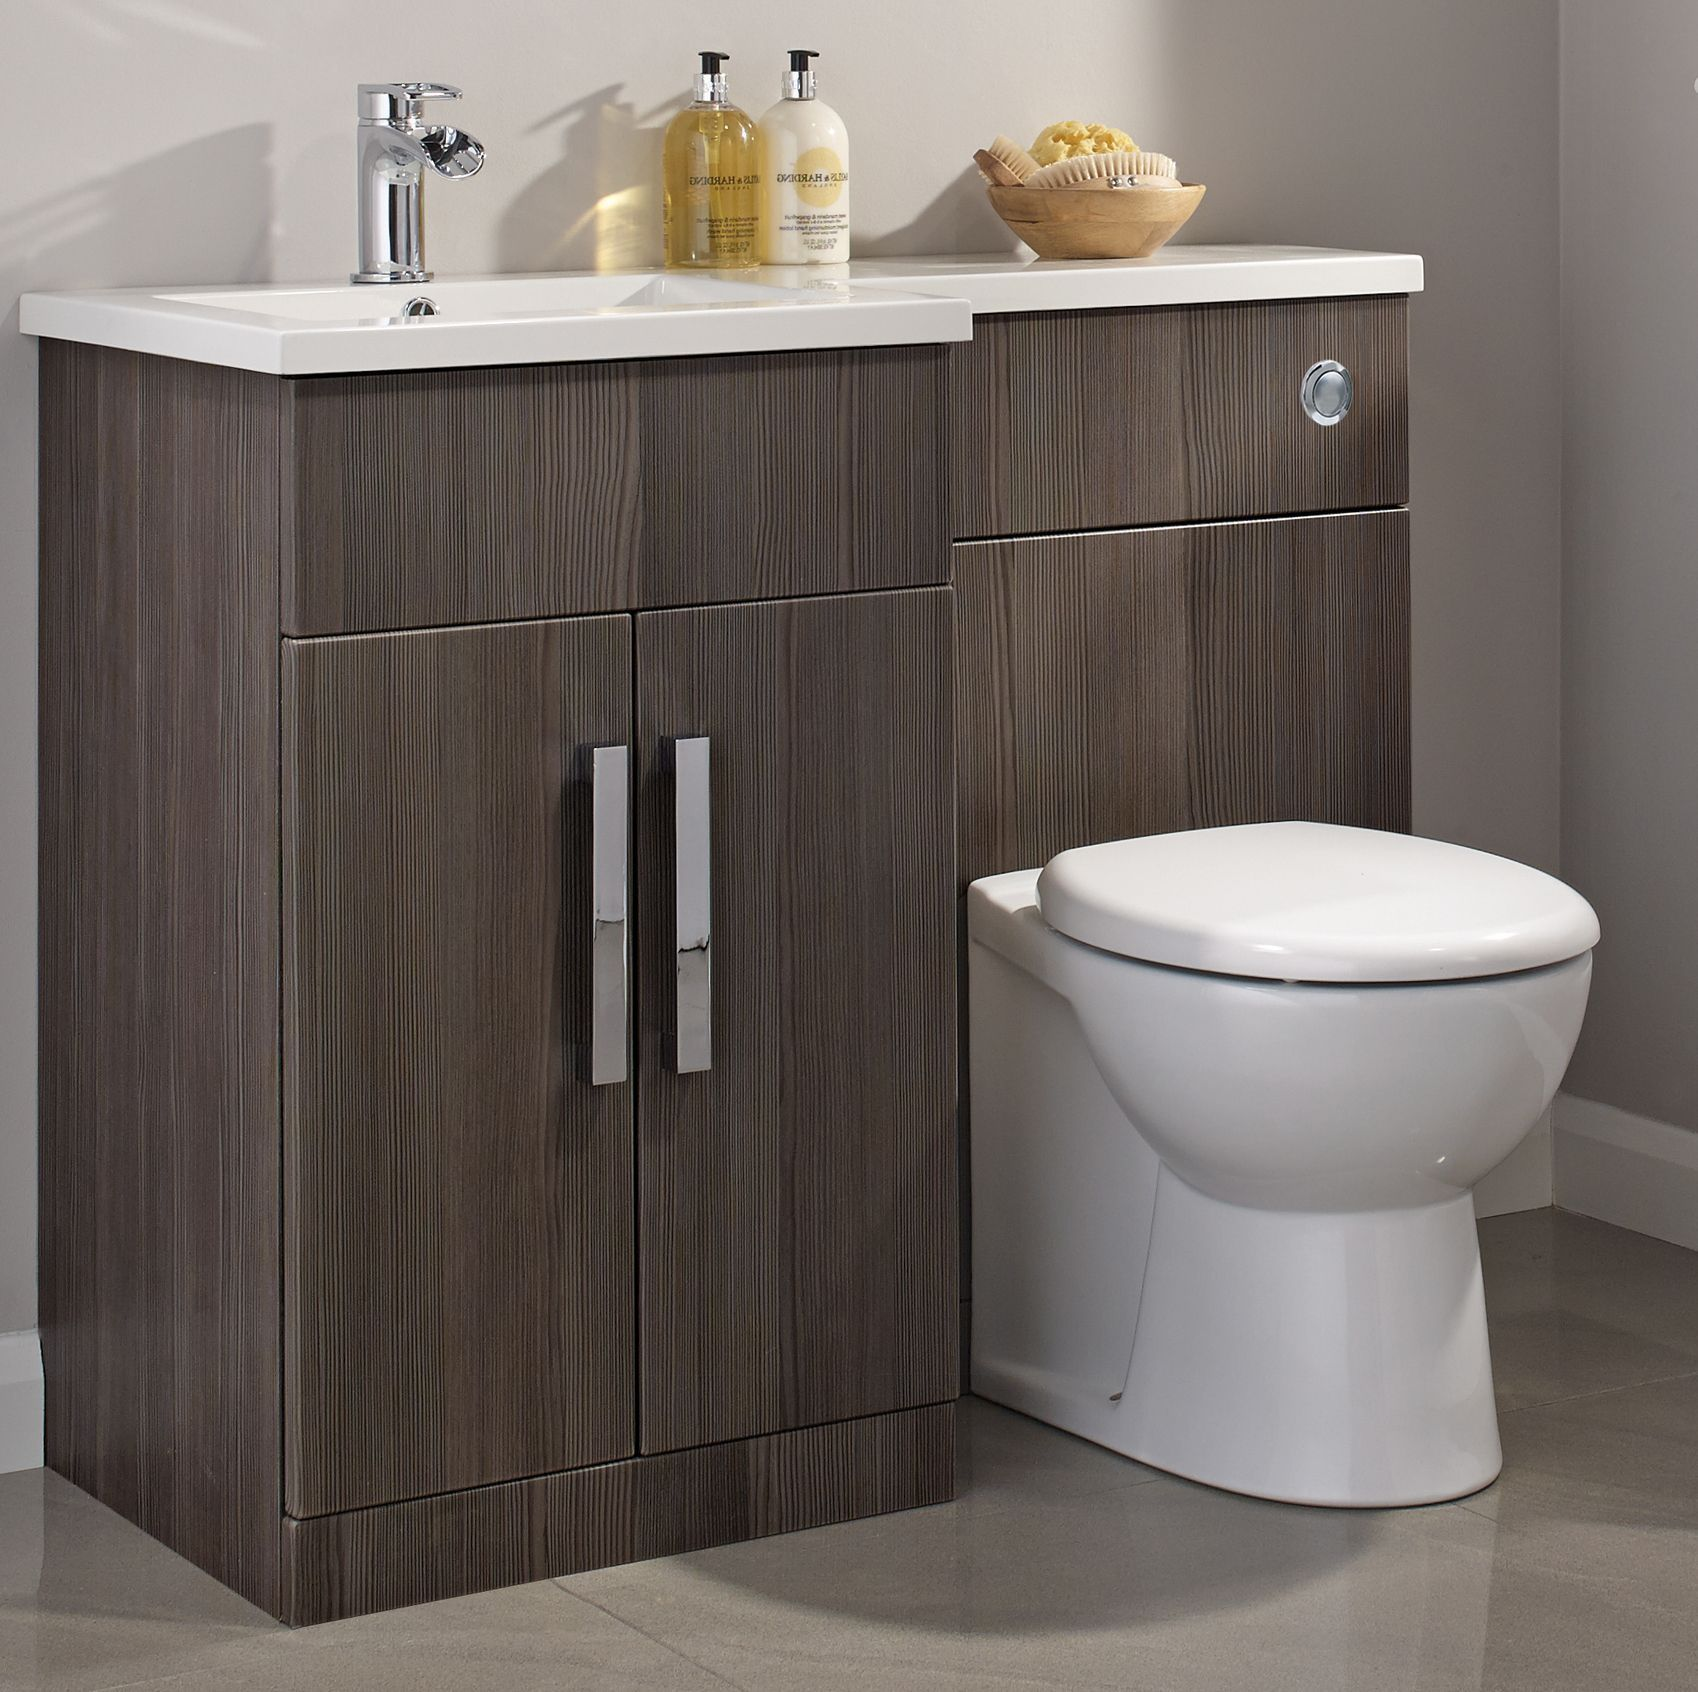 Bathroom Sinks B&Q toilet & vanity units | free-standing furniture | bathroom